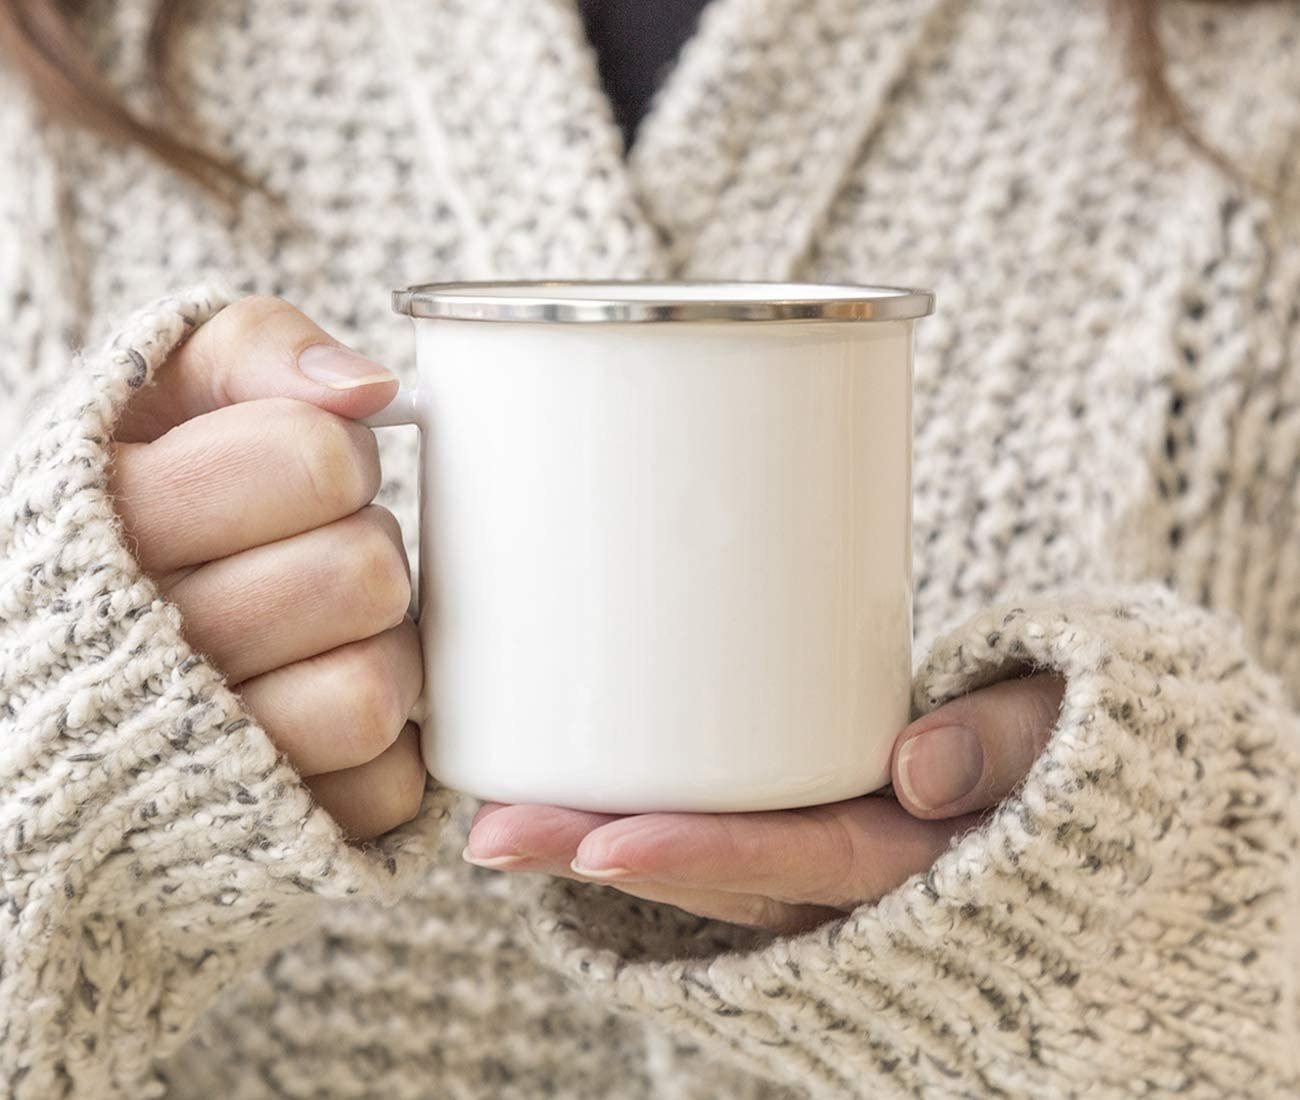 Model is holding a blank white campfire mug with a stainless steel rim